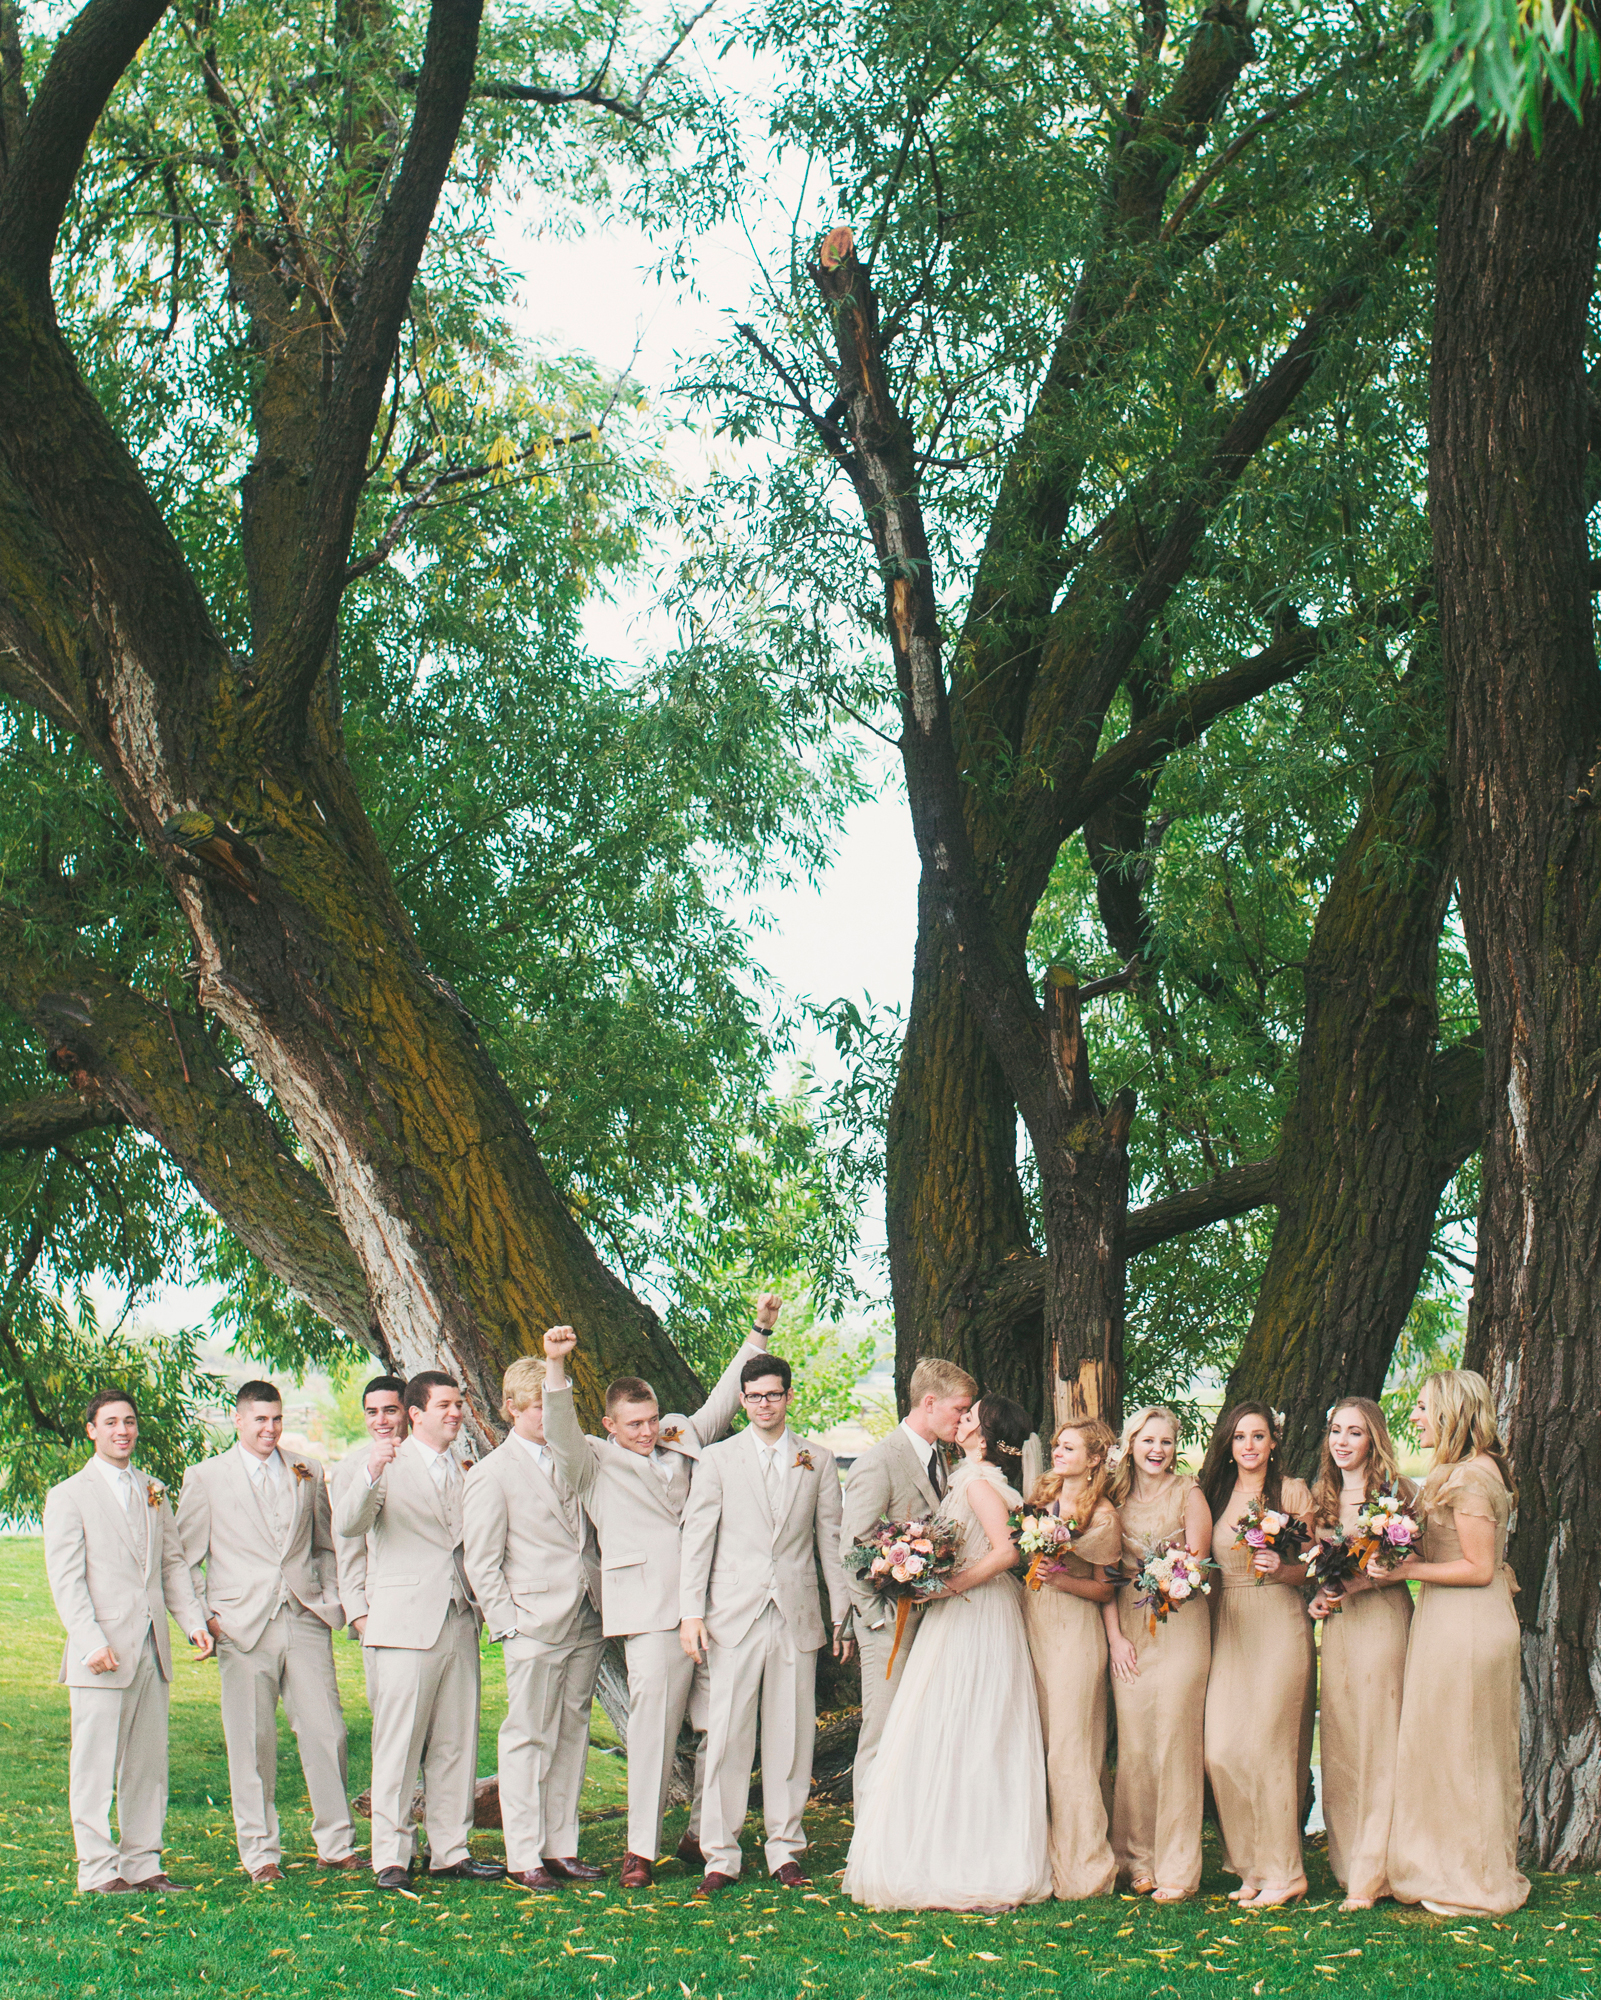 sara-matt-wedding-bridalparty-2341-s111990-0715.jpg